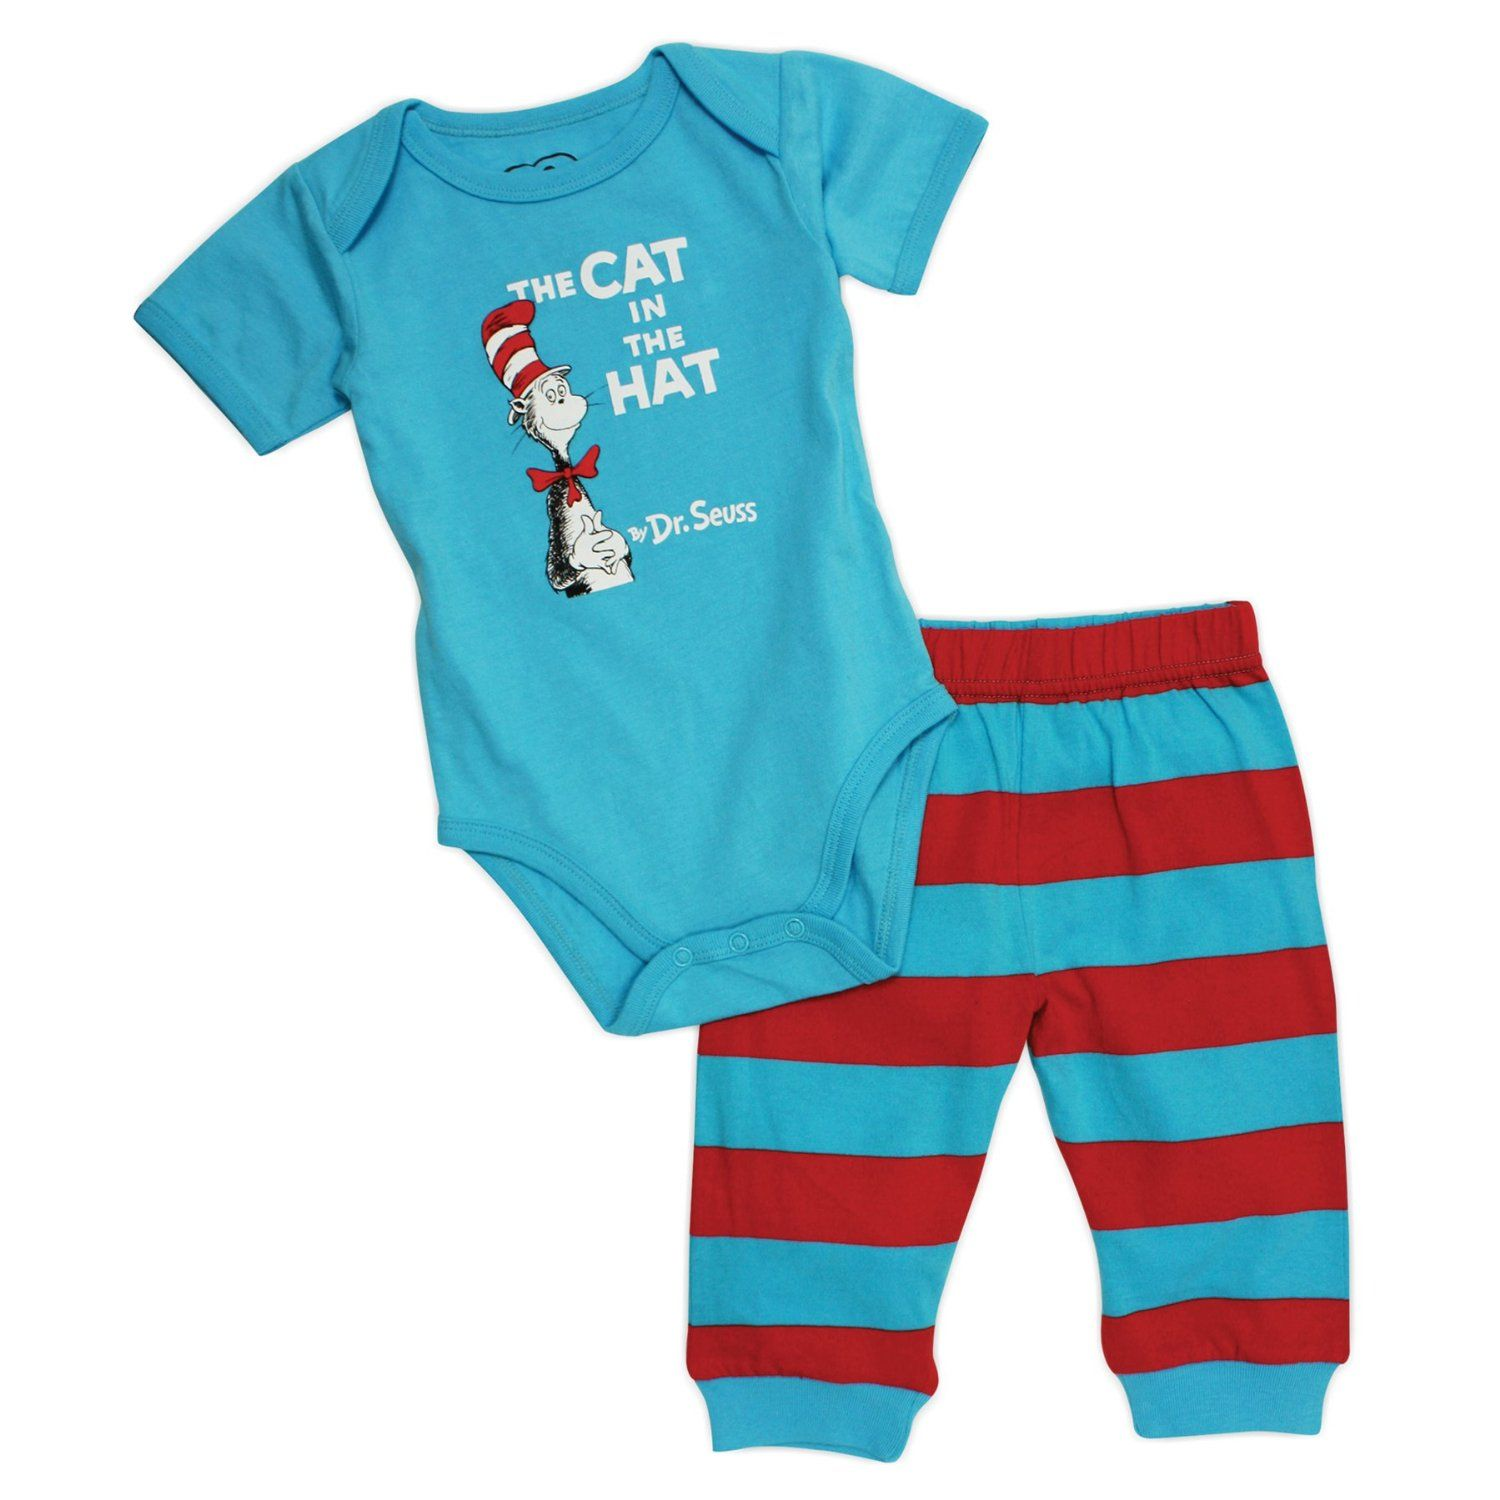 Dr. Seuss Baby Clothing, Shoes & Jewelry